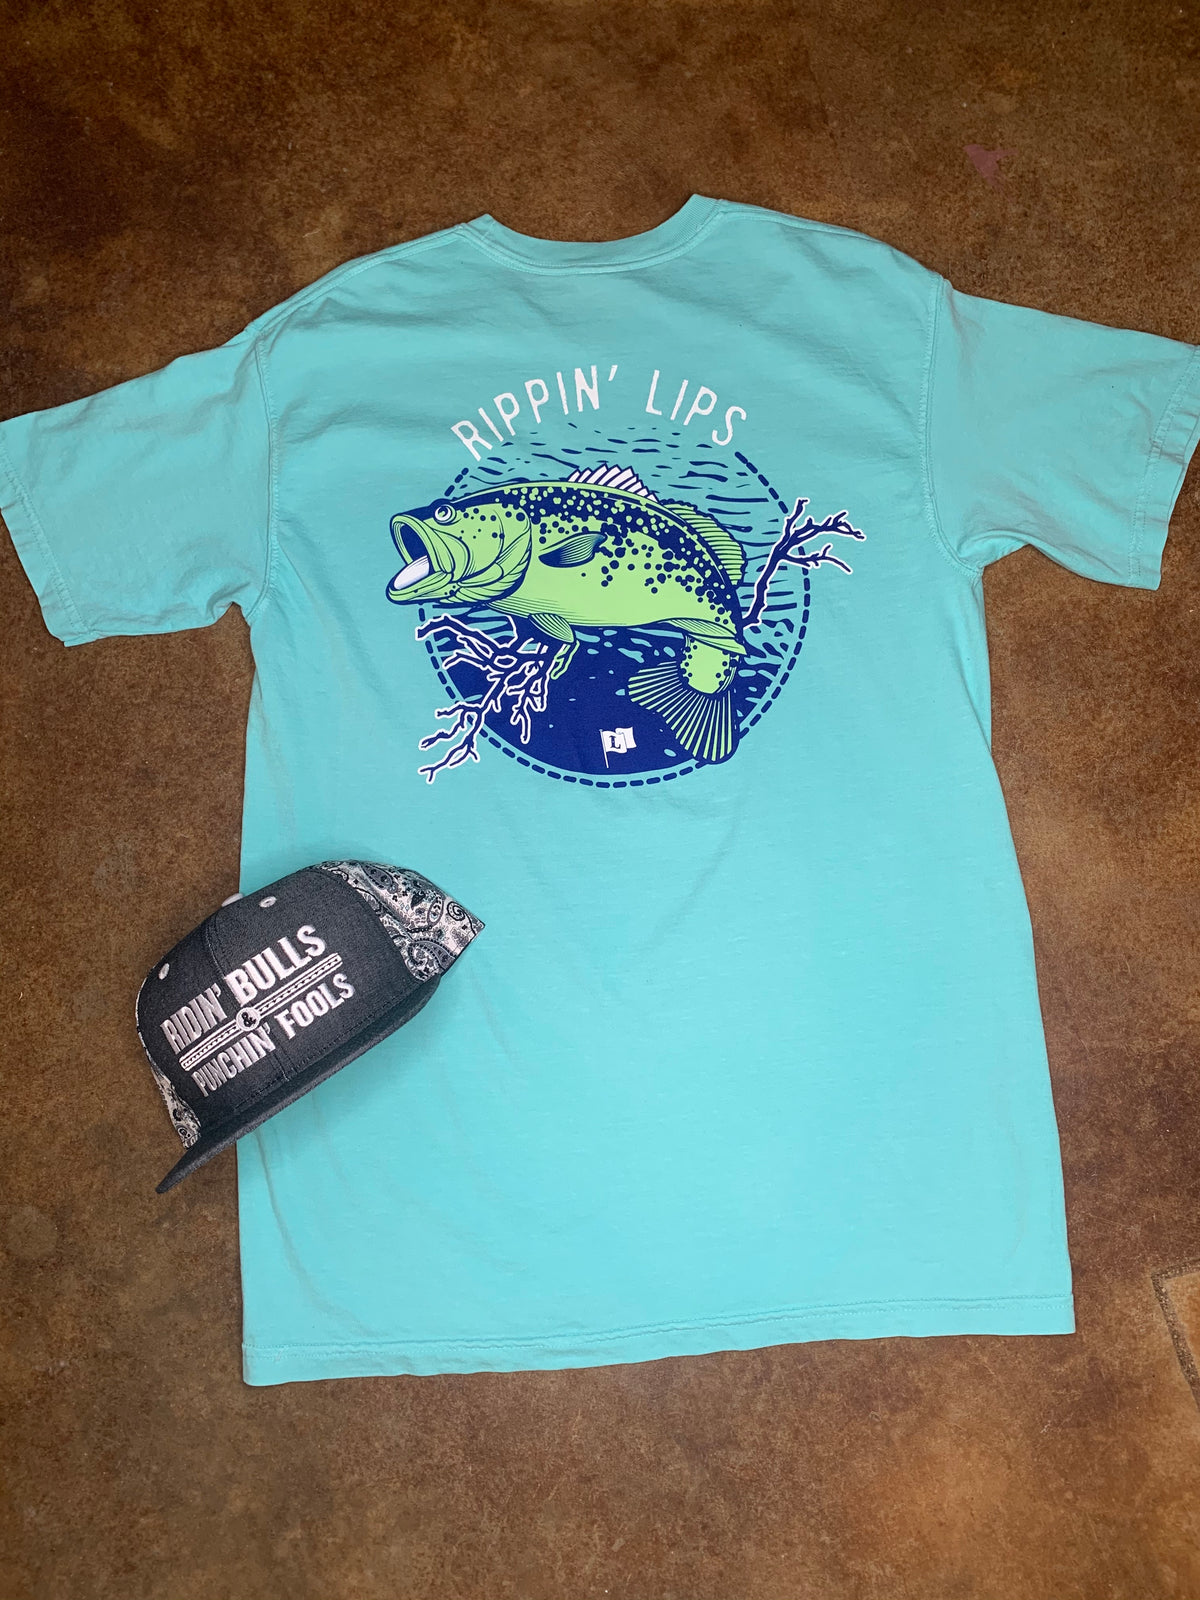 Rippin' Lips Graphic Tee